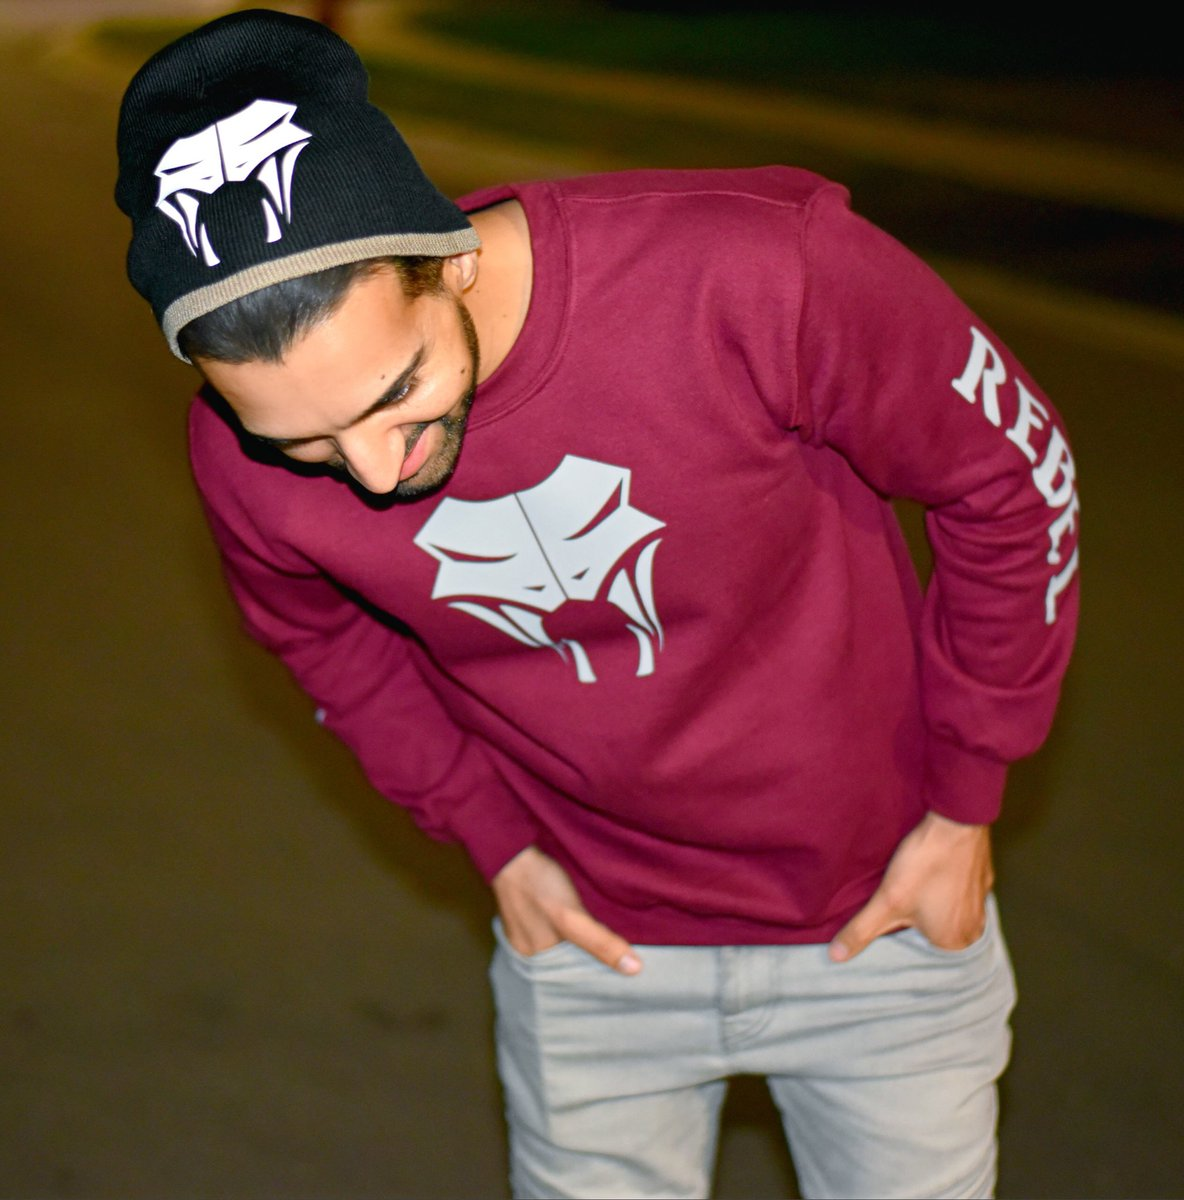 Sham Idrees On Twitter A Head Full Of Fears Has No Space For Dreams Rebelbyshamidrees